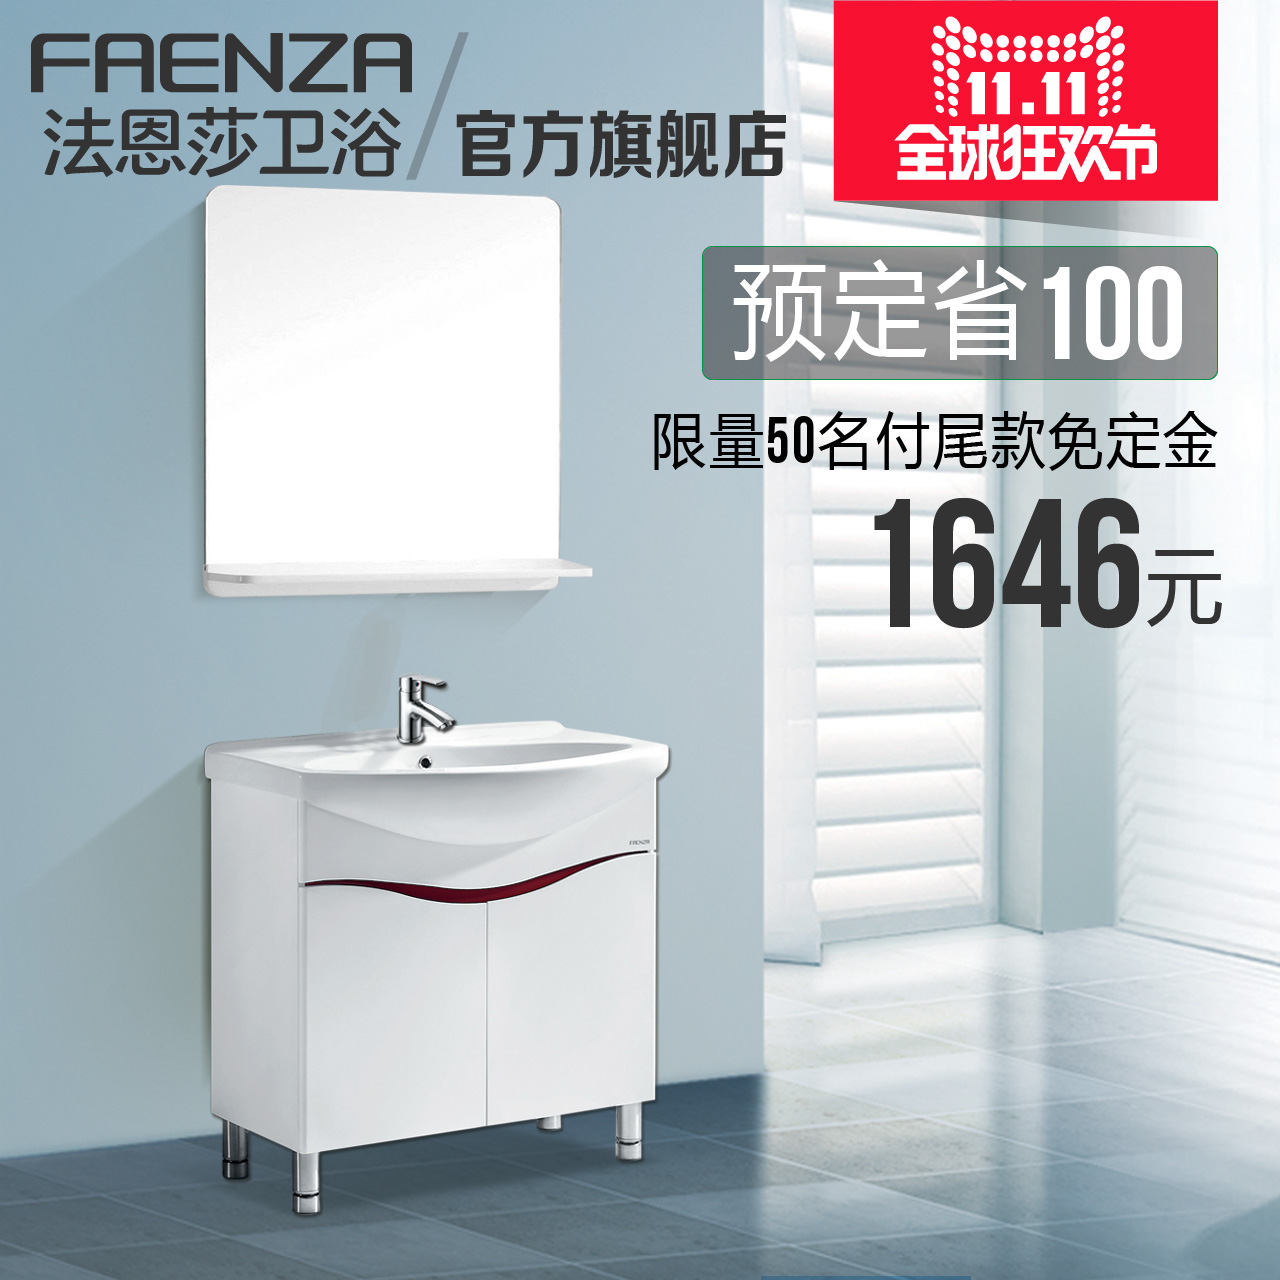 Faenza pvc bathroom cabinet continental FPG3637 one ceramic basin wall mounted bathroom cabinet mirror cabinet combination of new